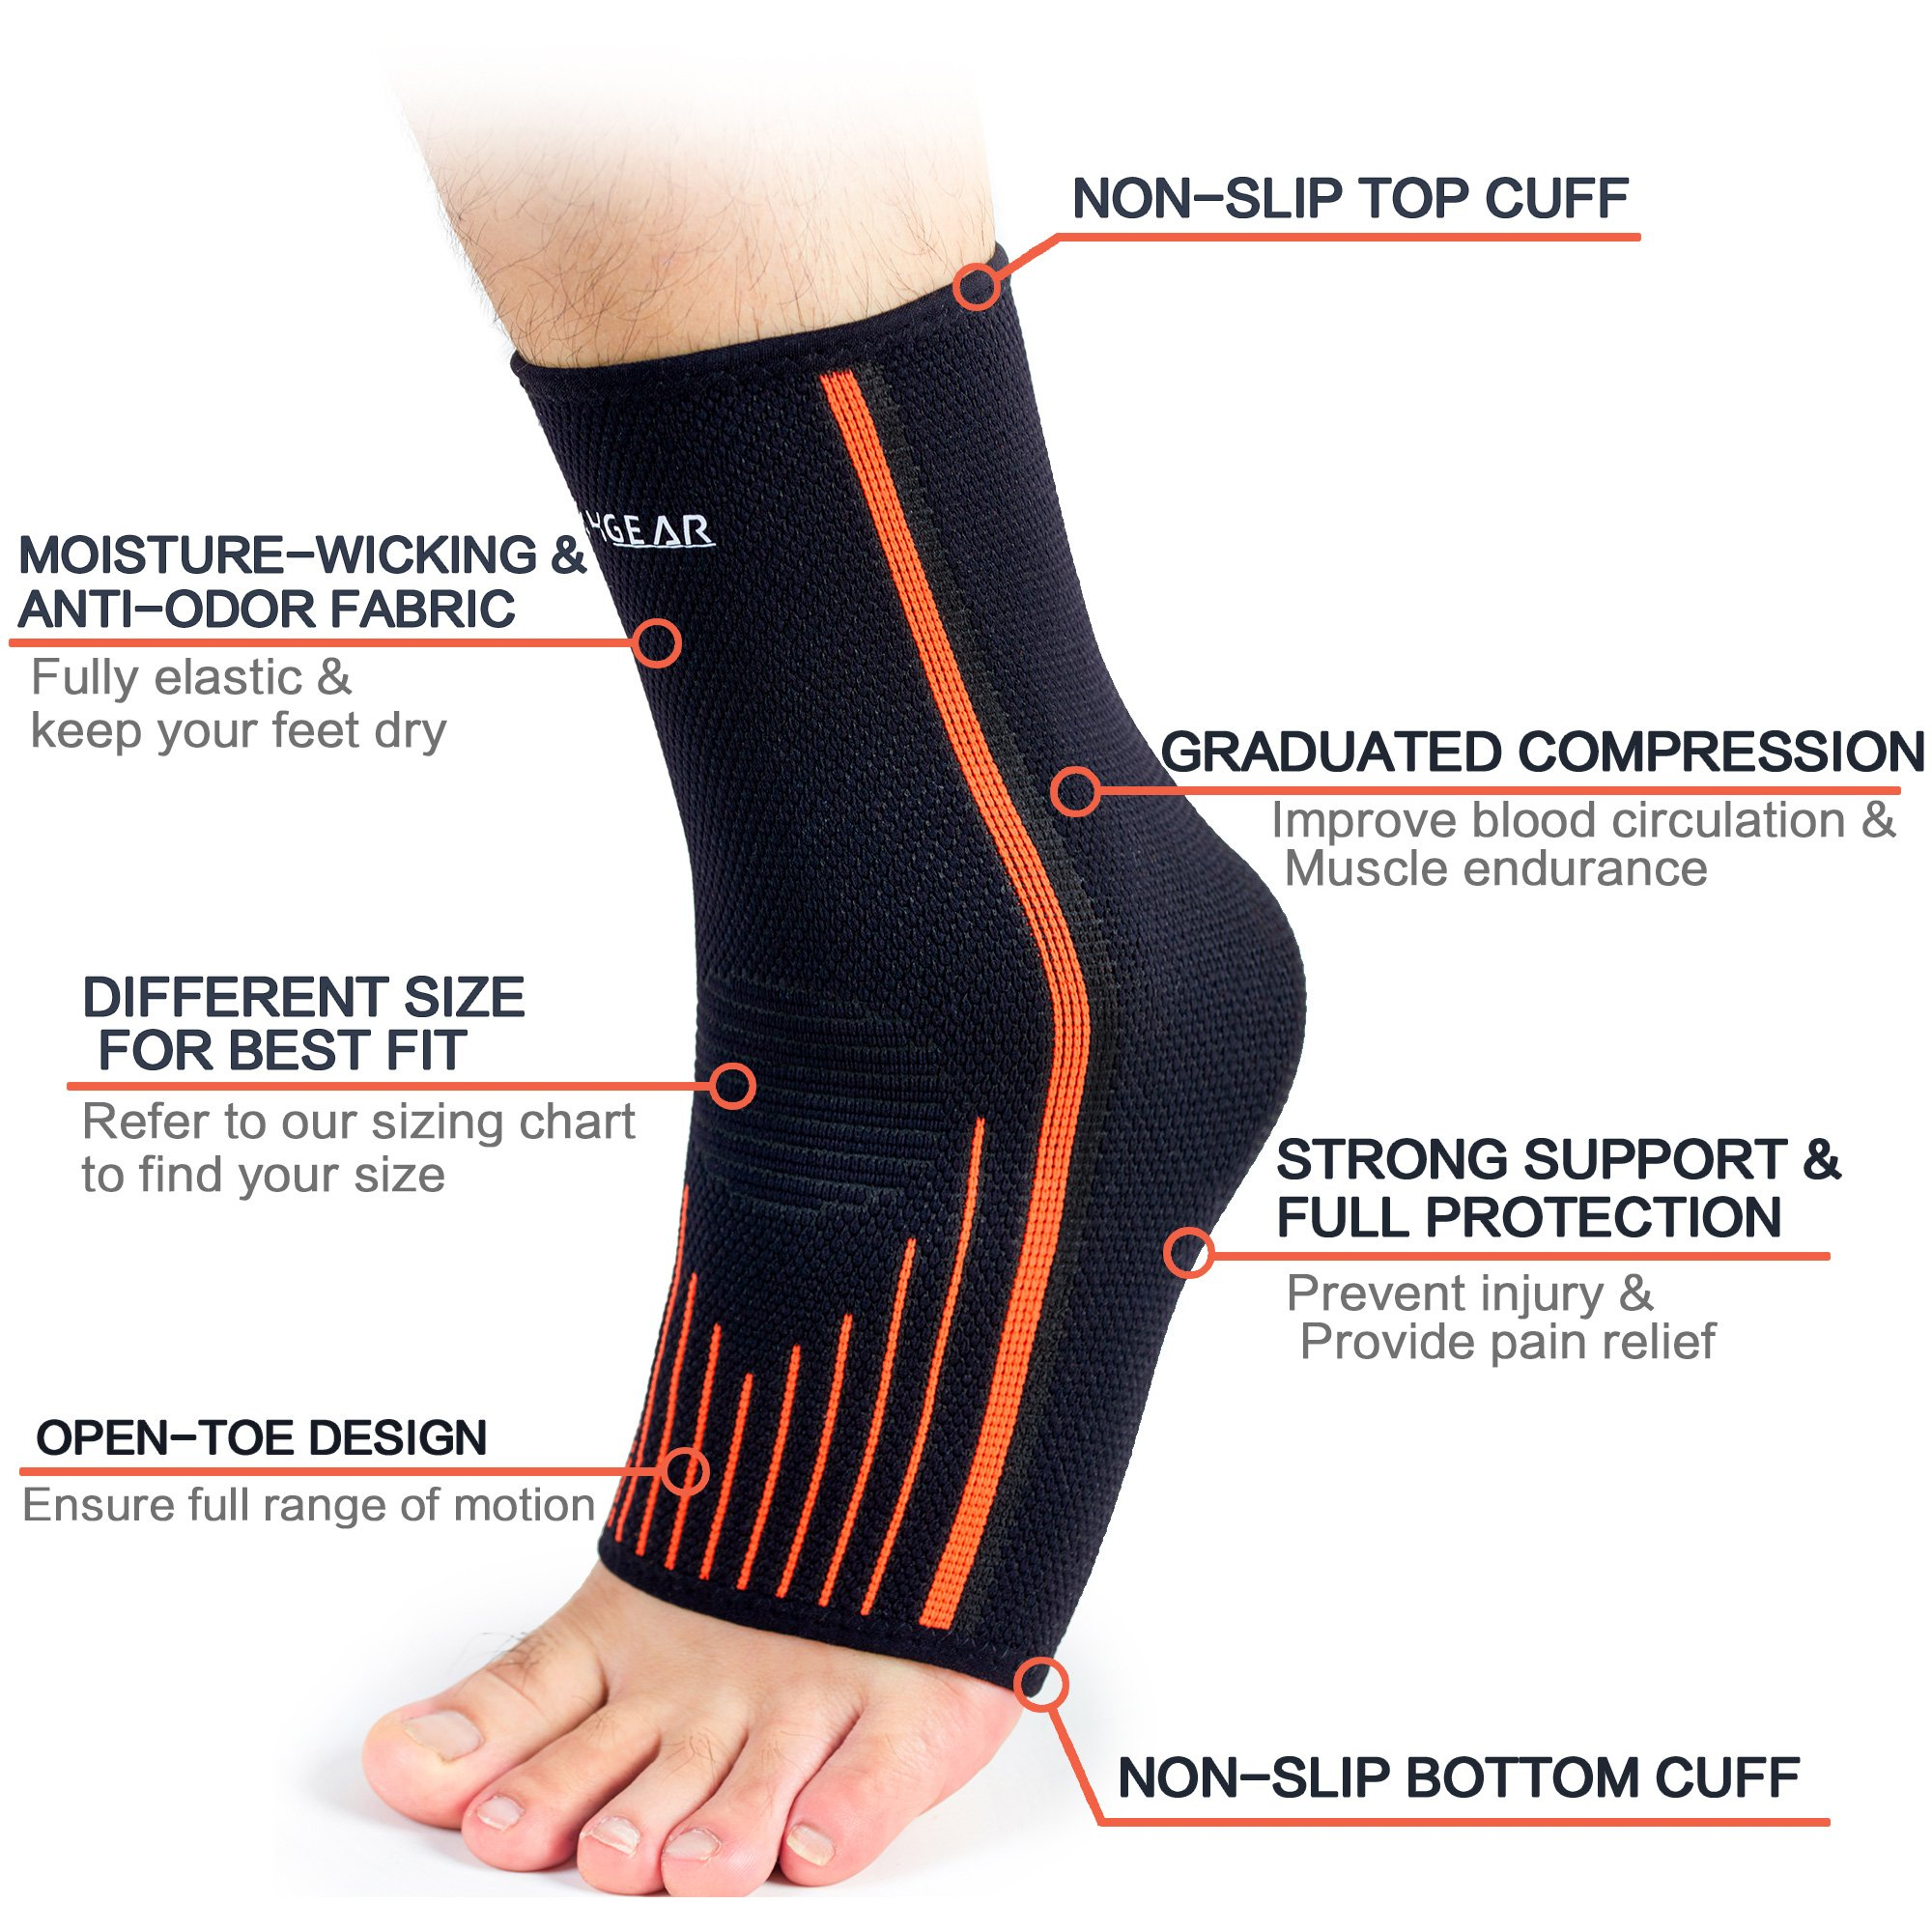 4428c38564 Ankle Support Kit - (2 or 4 Pack)- Ankle Brace Straps & Ankle Compression  Sleeves - Best for Sports Protection, Injury Recovery, Reduce Swelling,  Ankle ...